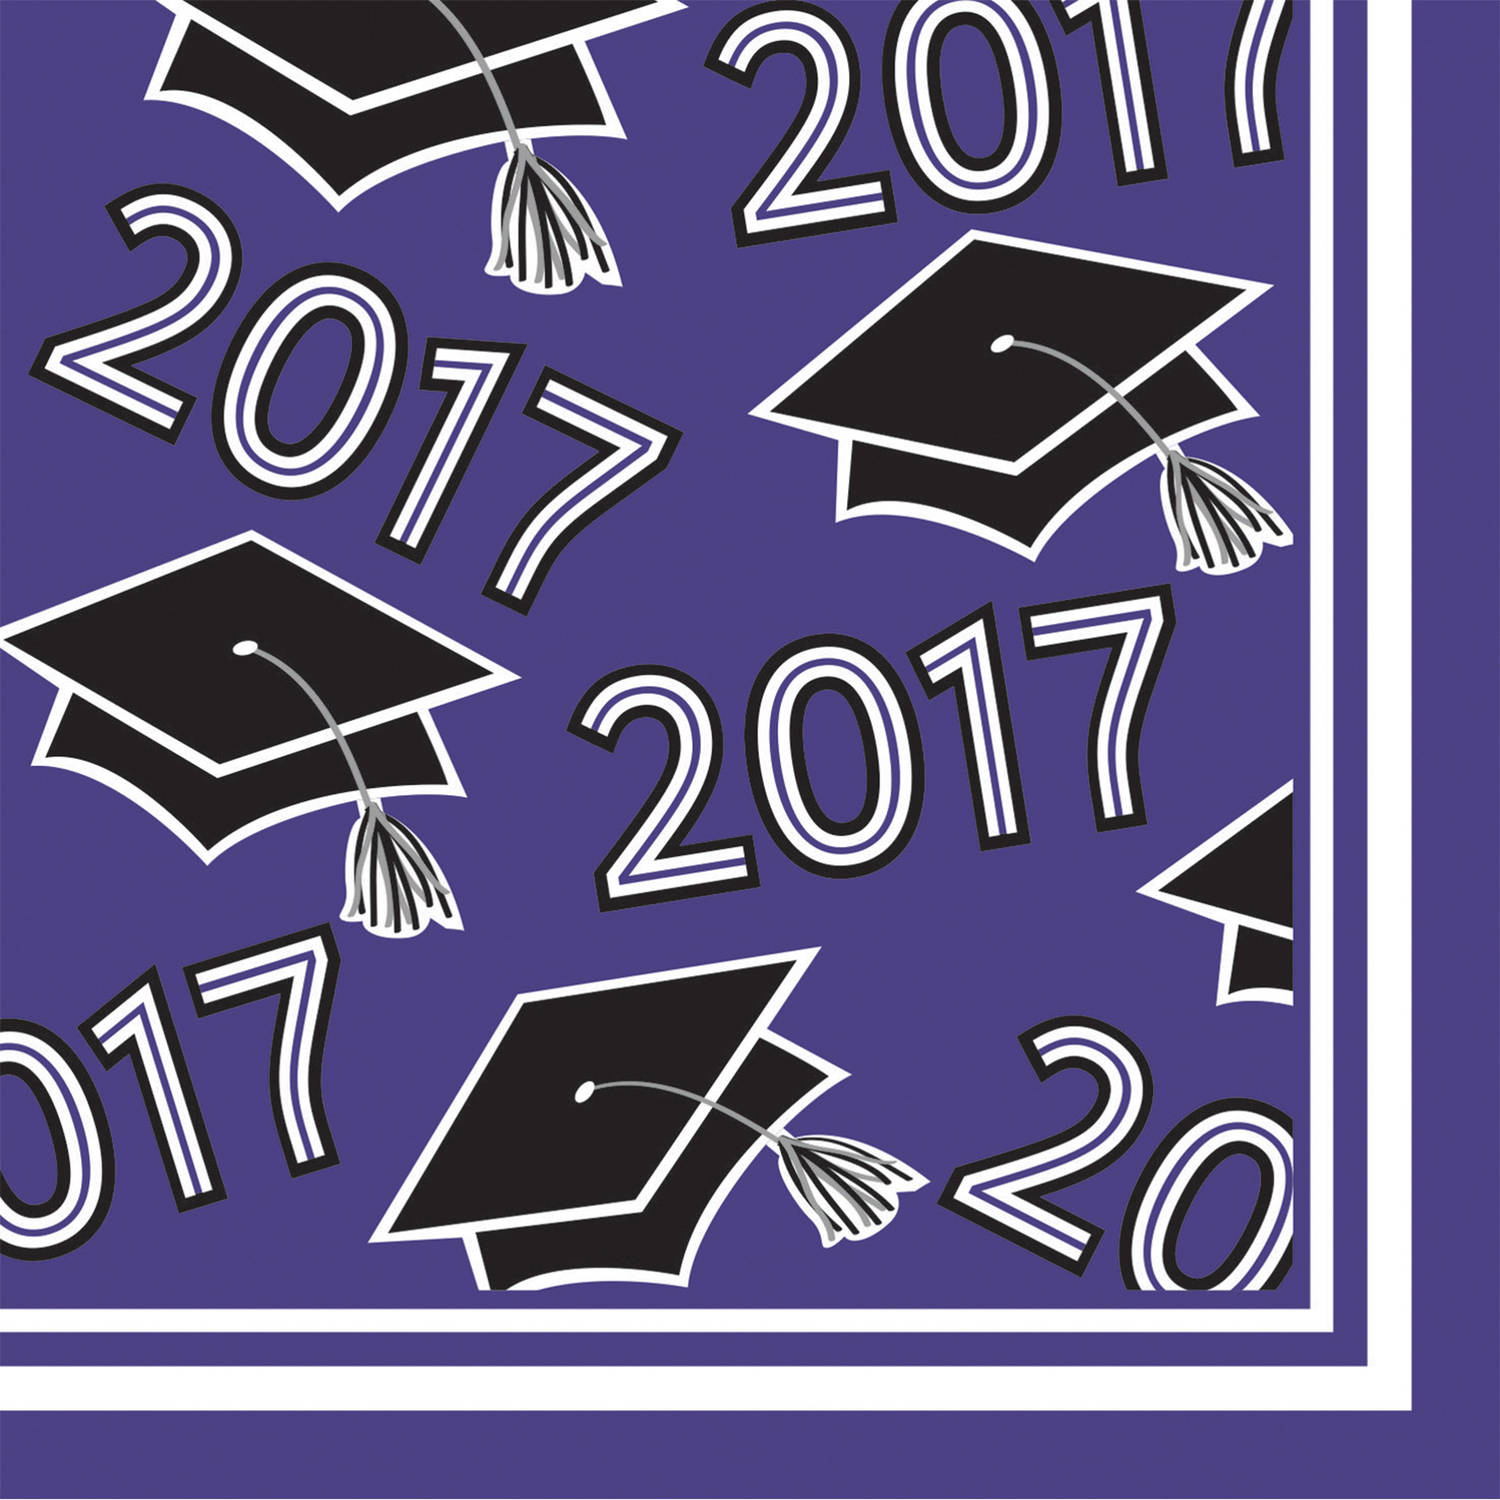 Class of 2017 Purple Beverage Napkins, 36pk by CREATIVE CONVERTING